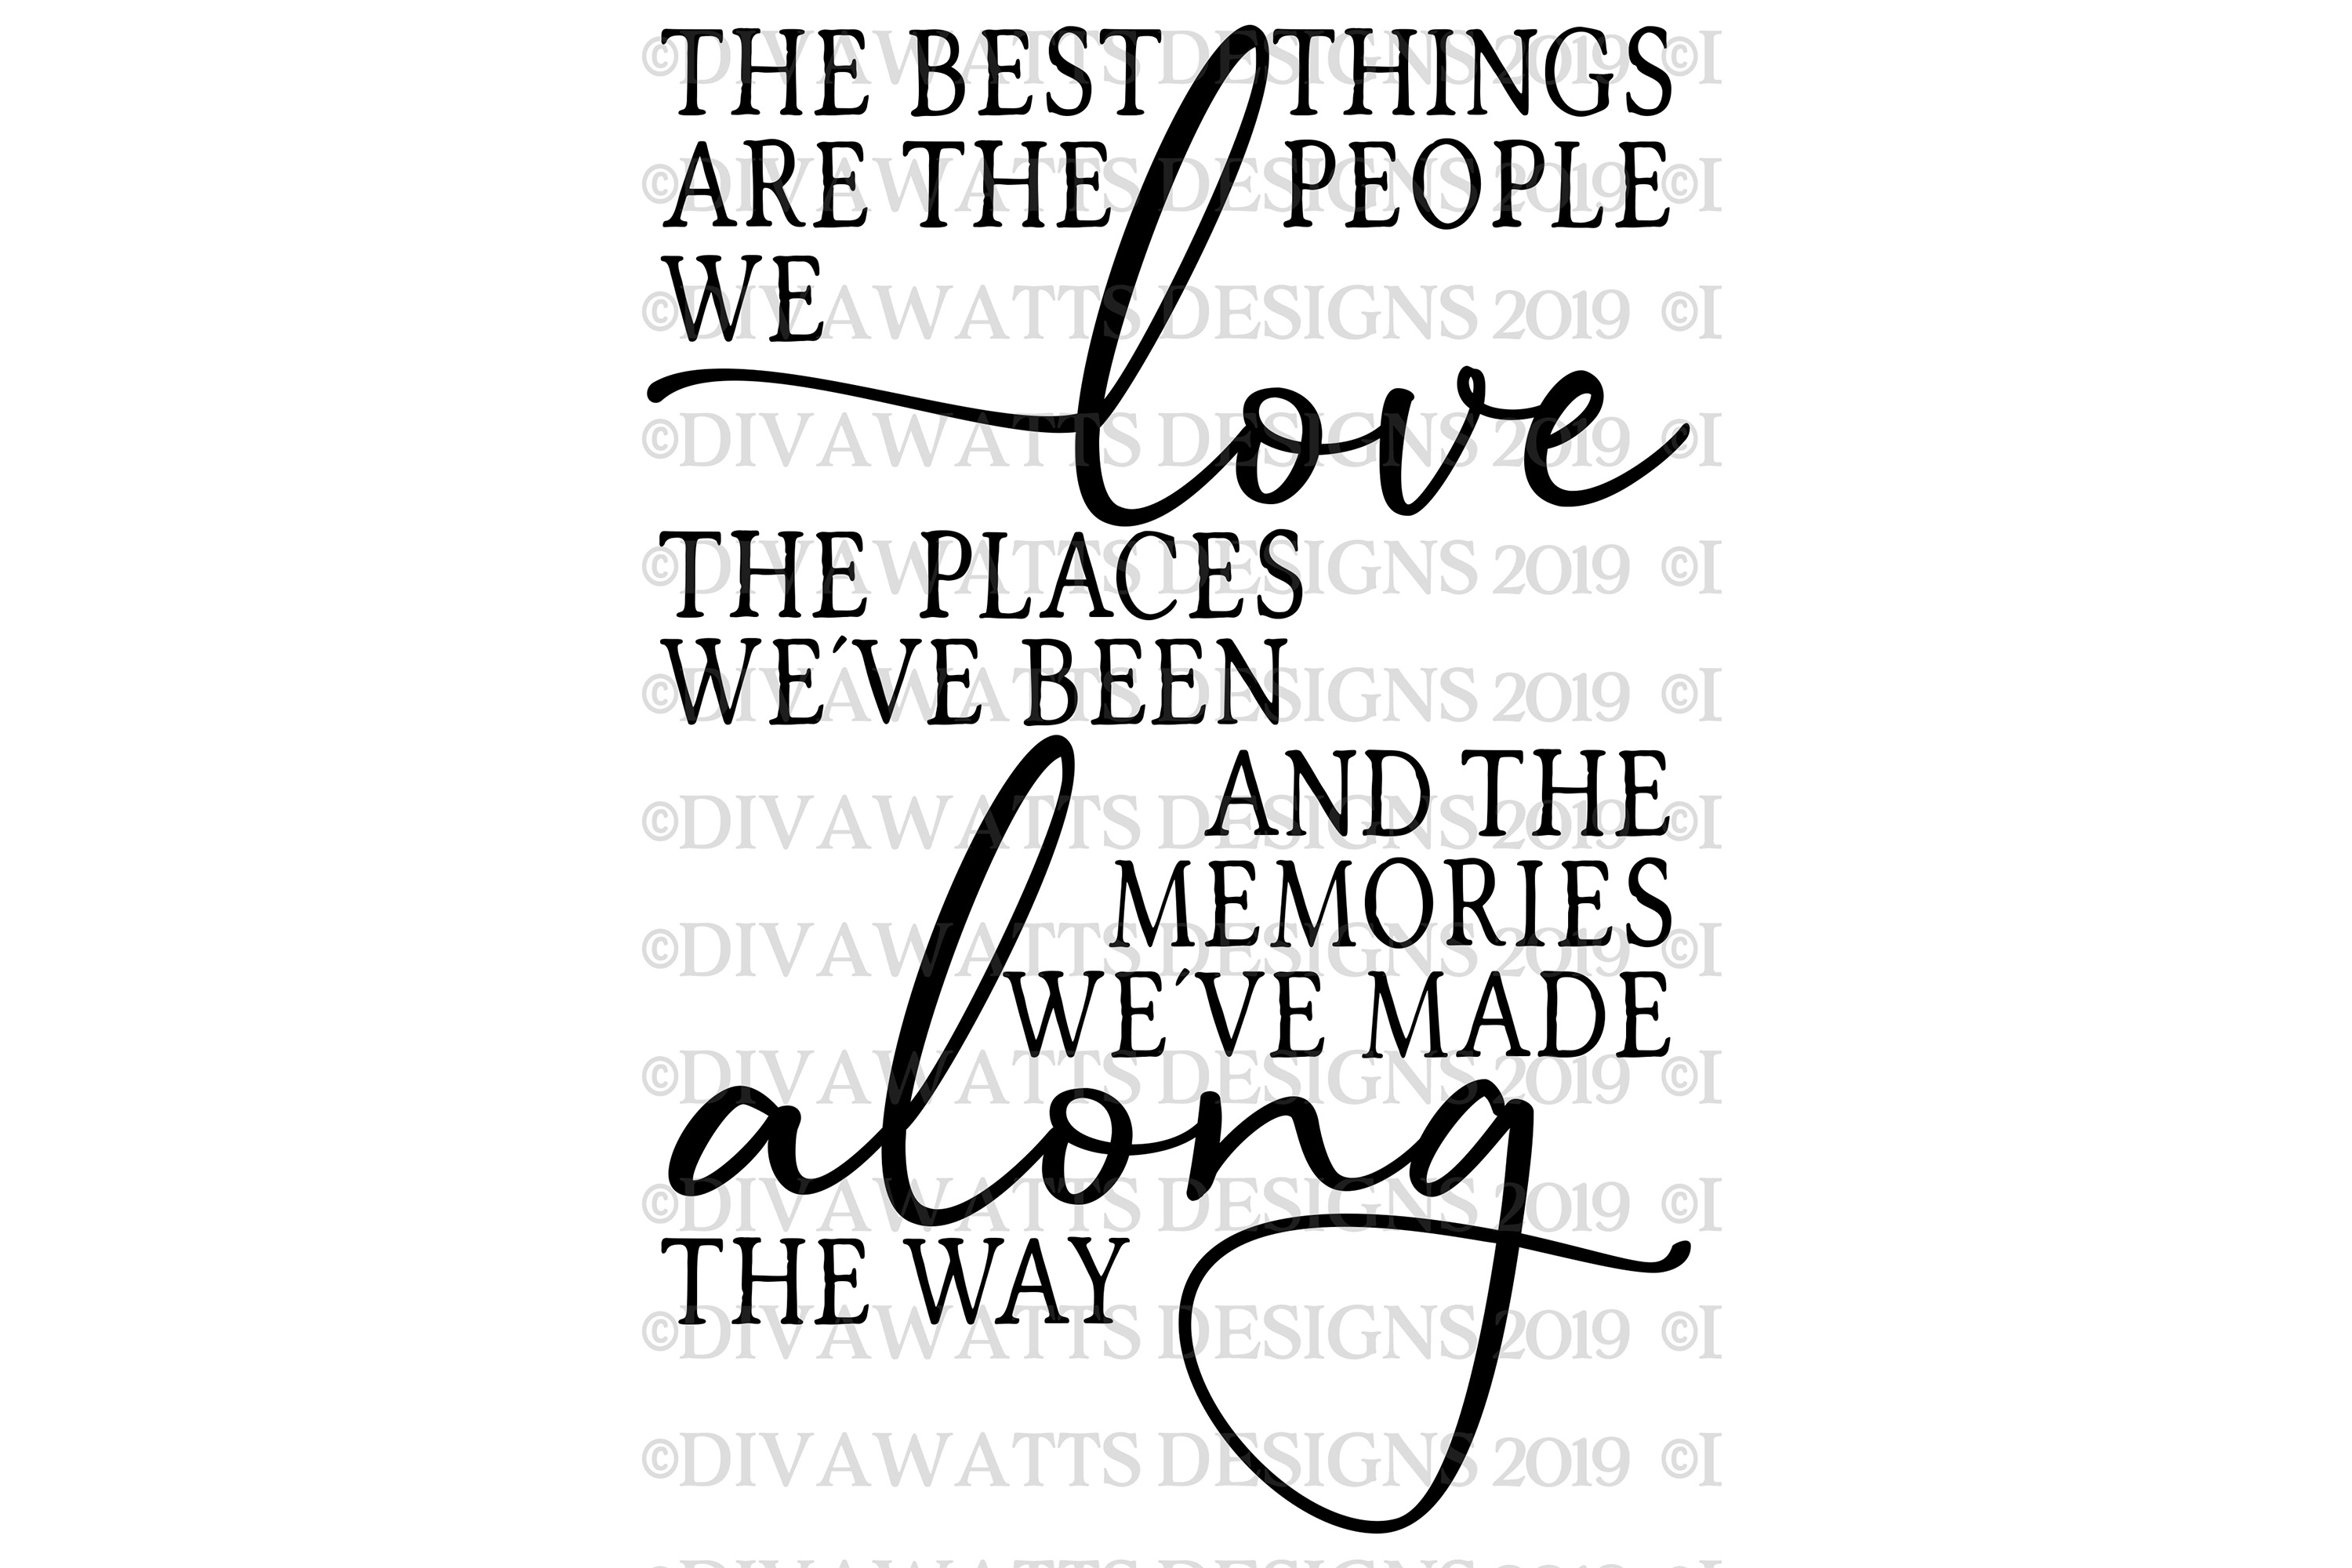 The Best Things In Life Are The People We Love - SVG File example image 2